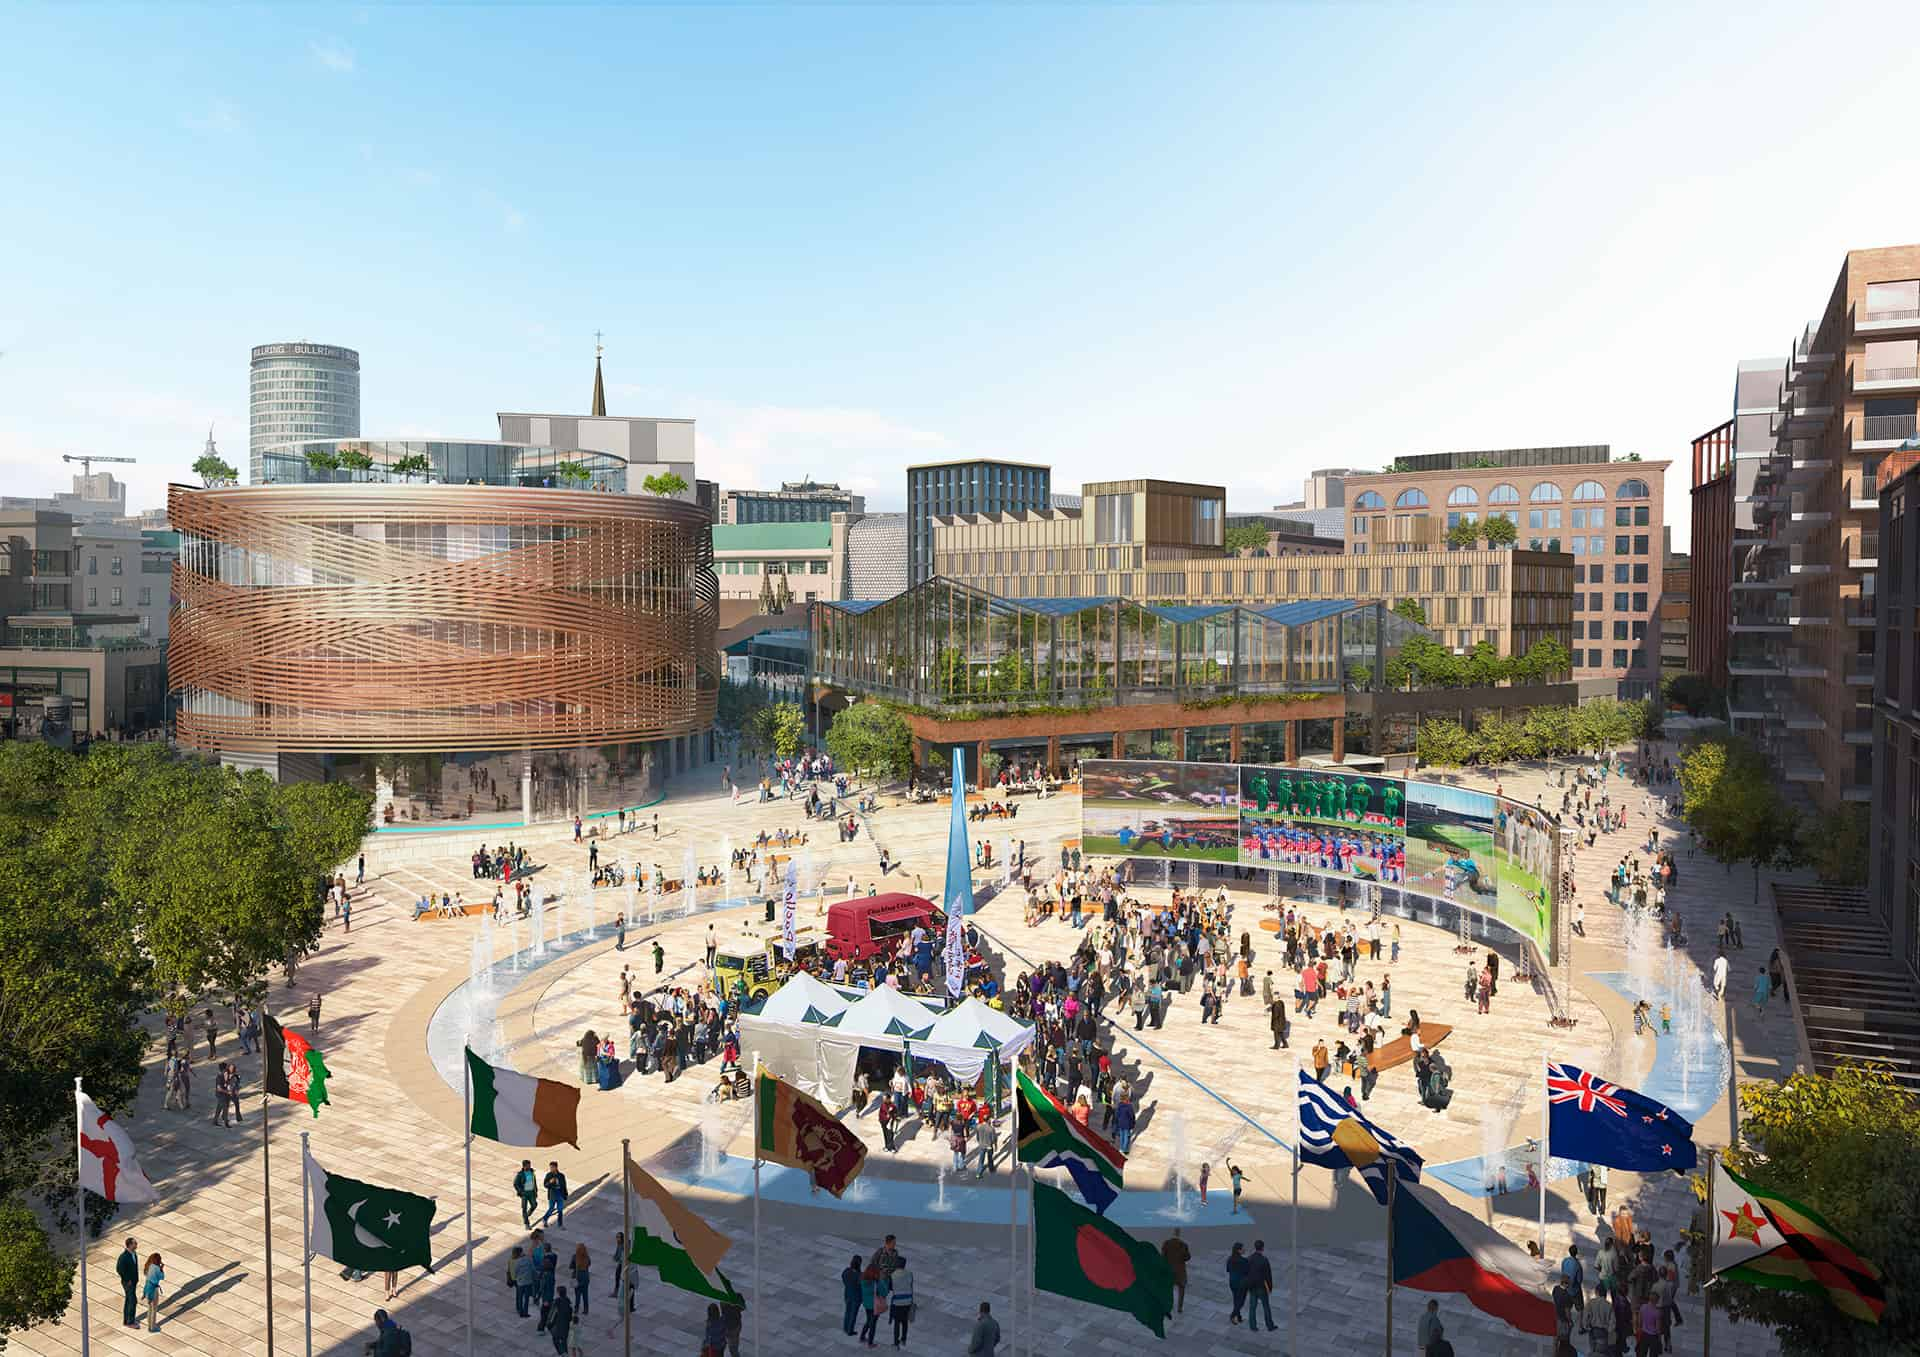 Birmingham Smithfield Development designed in collaboration of a larger team led by Lendlease